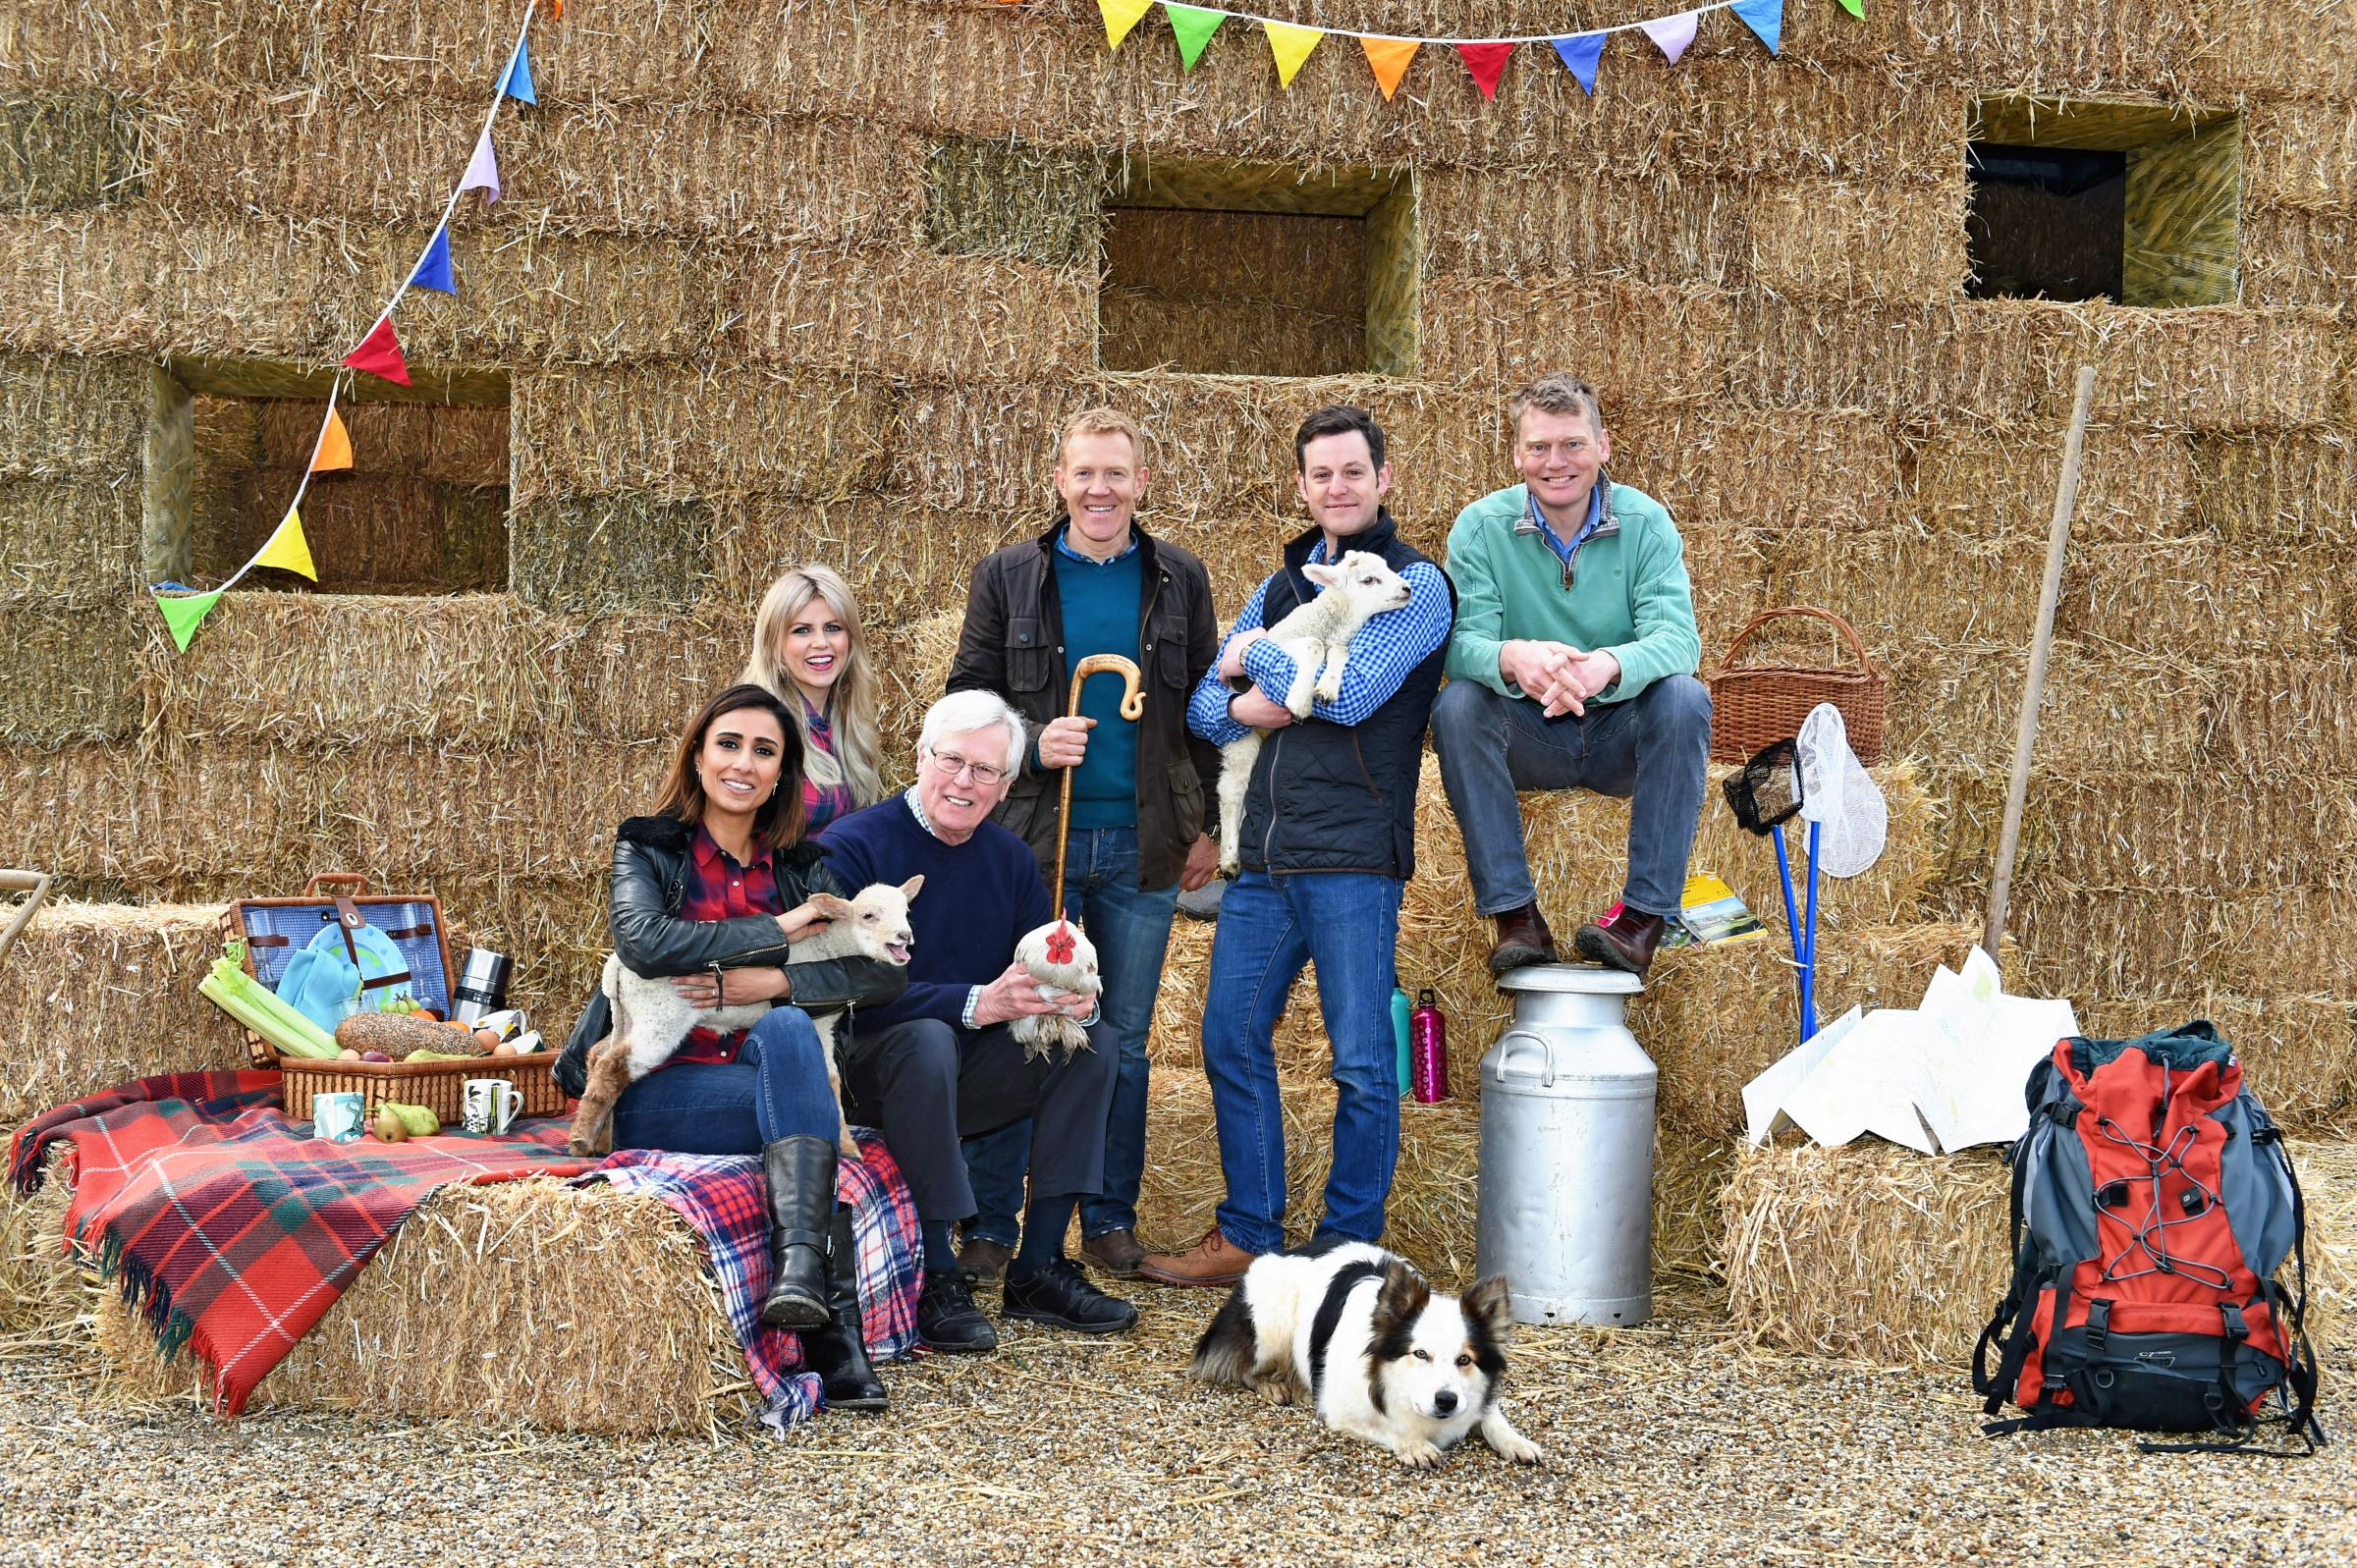 Countryfile Live begins today at Blenheim Palace